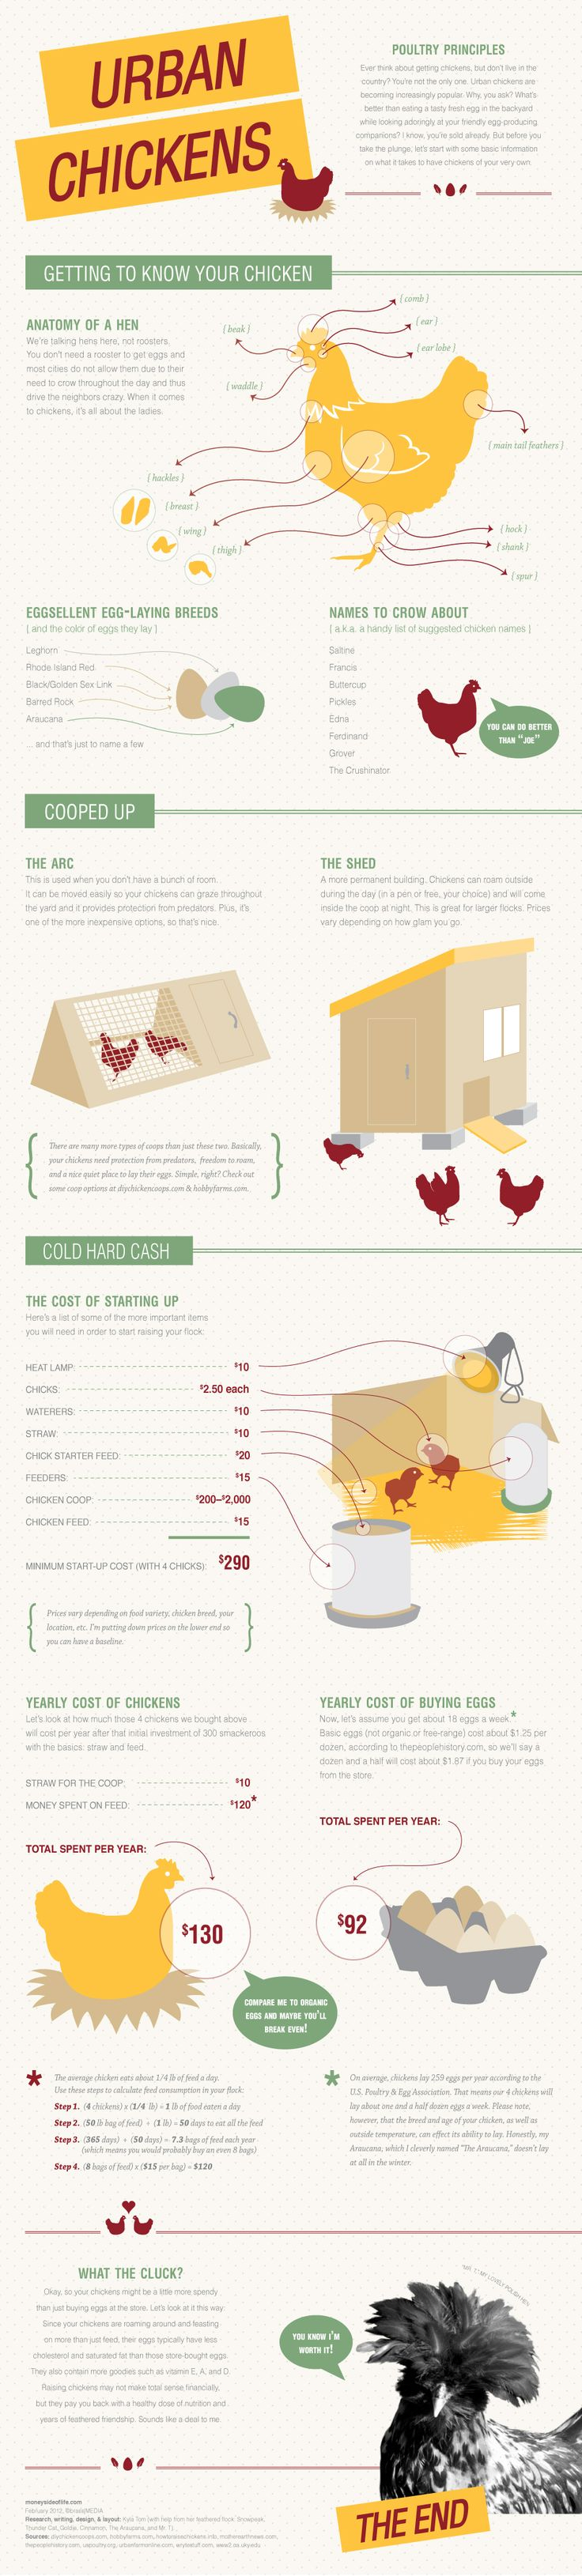 Ever think about getting chickens, but don't live in the country? Check out this infographic.